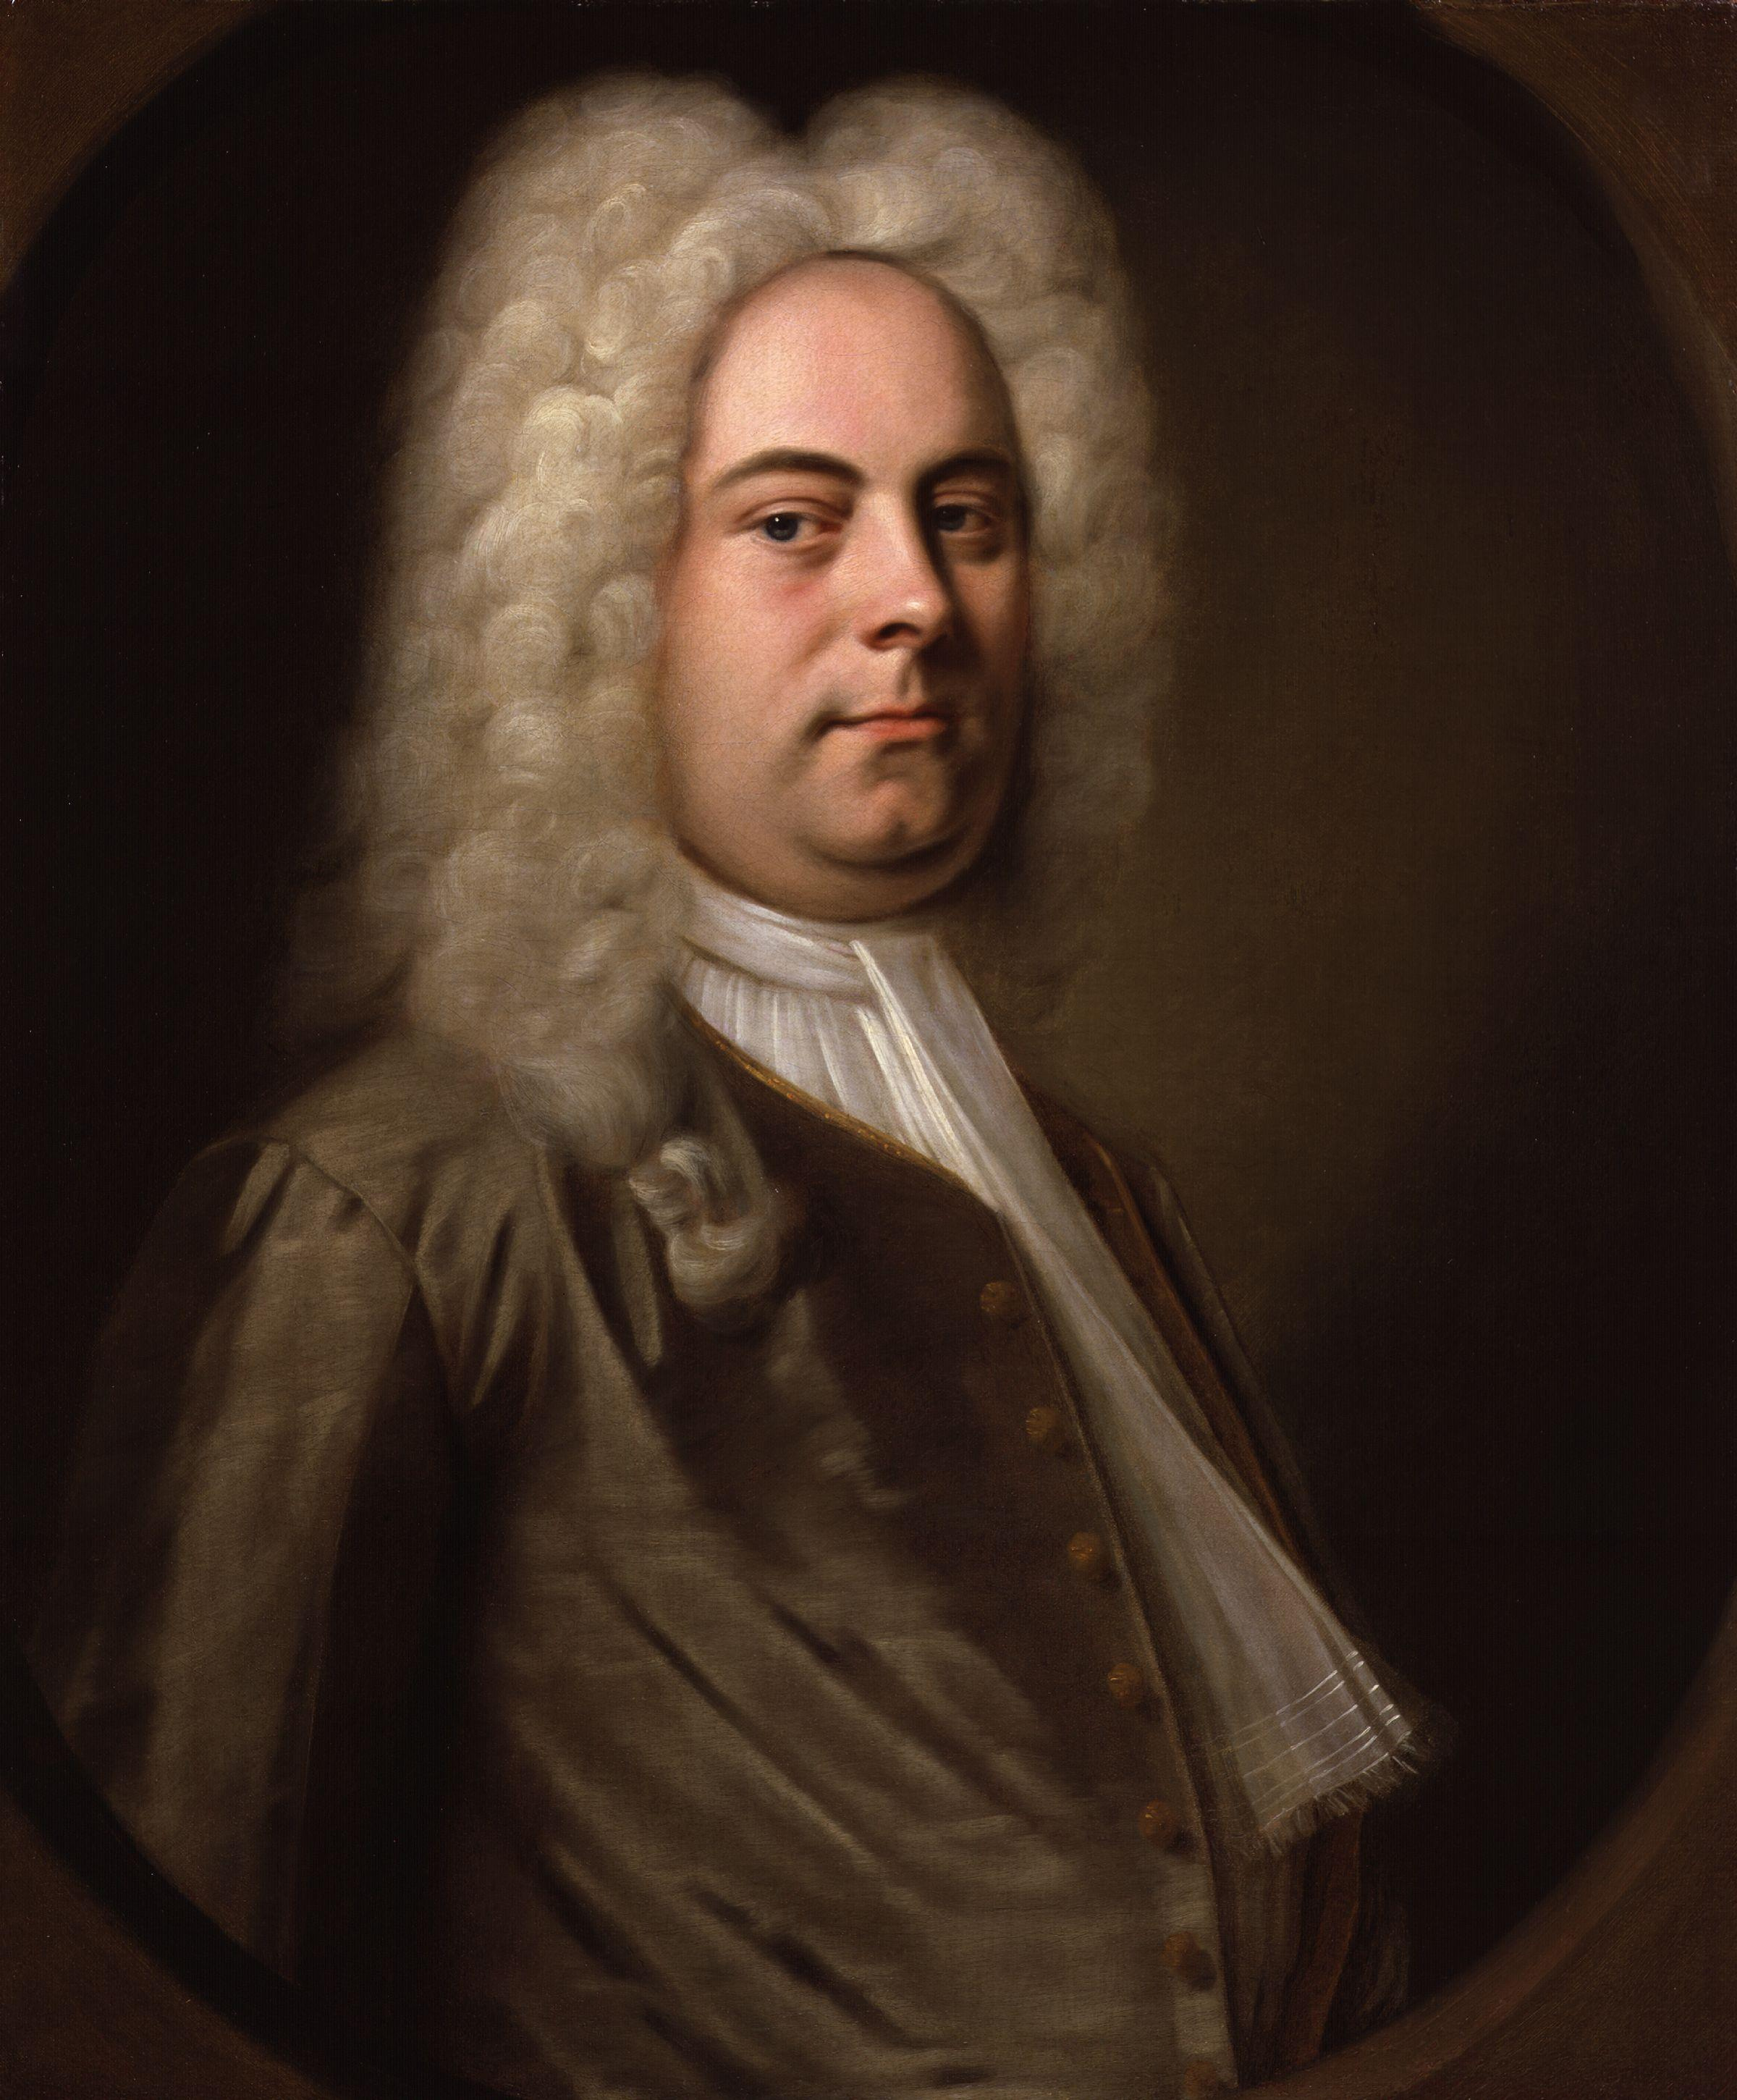 https://upload.wikimedia.org/wikipedia/commons/f/fa/George_Frideric_Handel_by_Balthasar_Denner.jpg